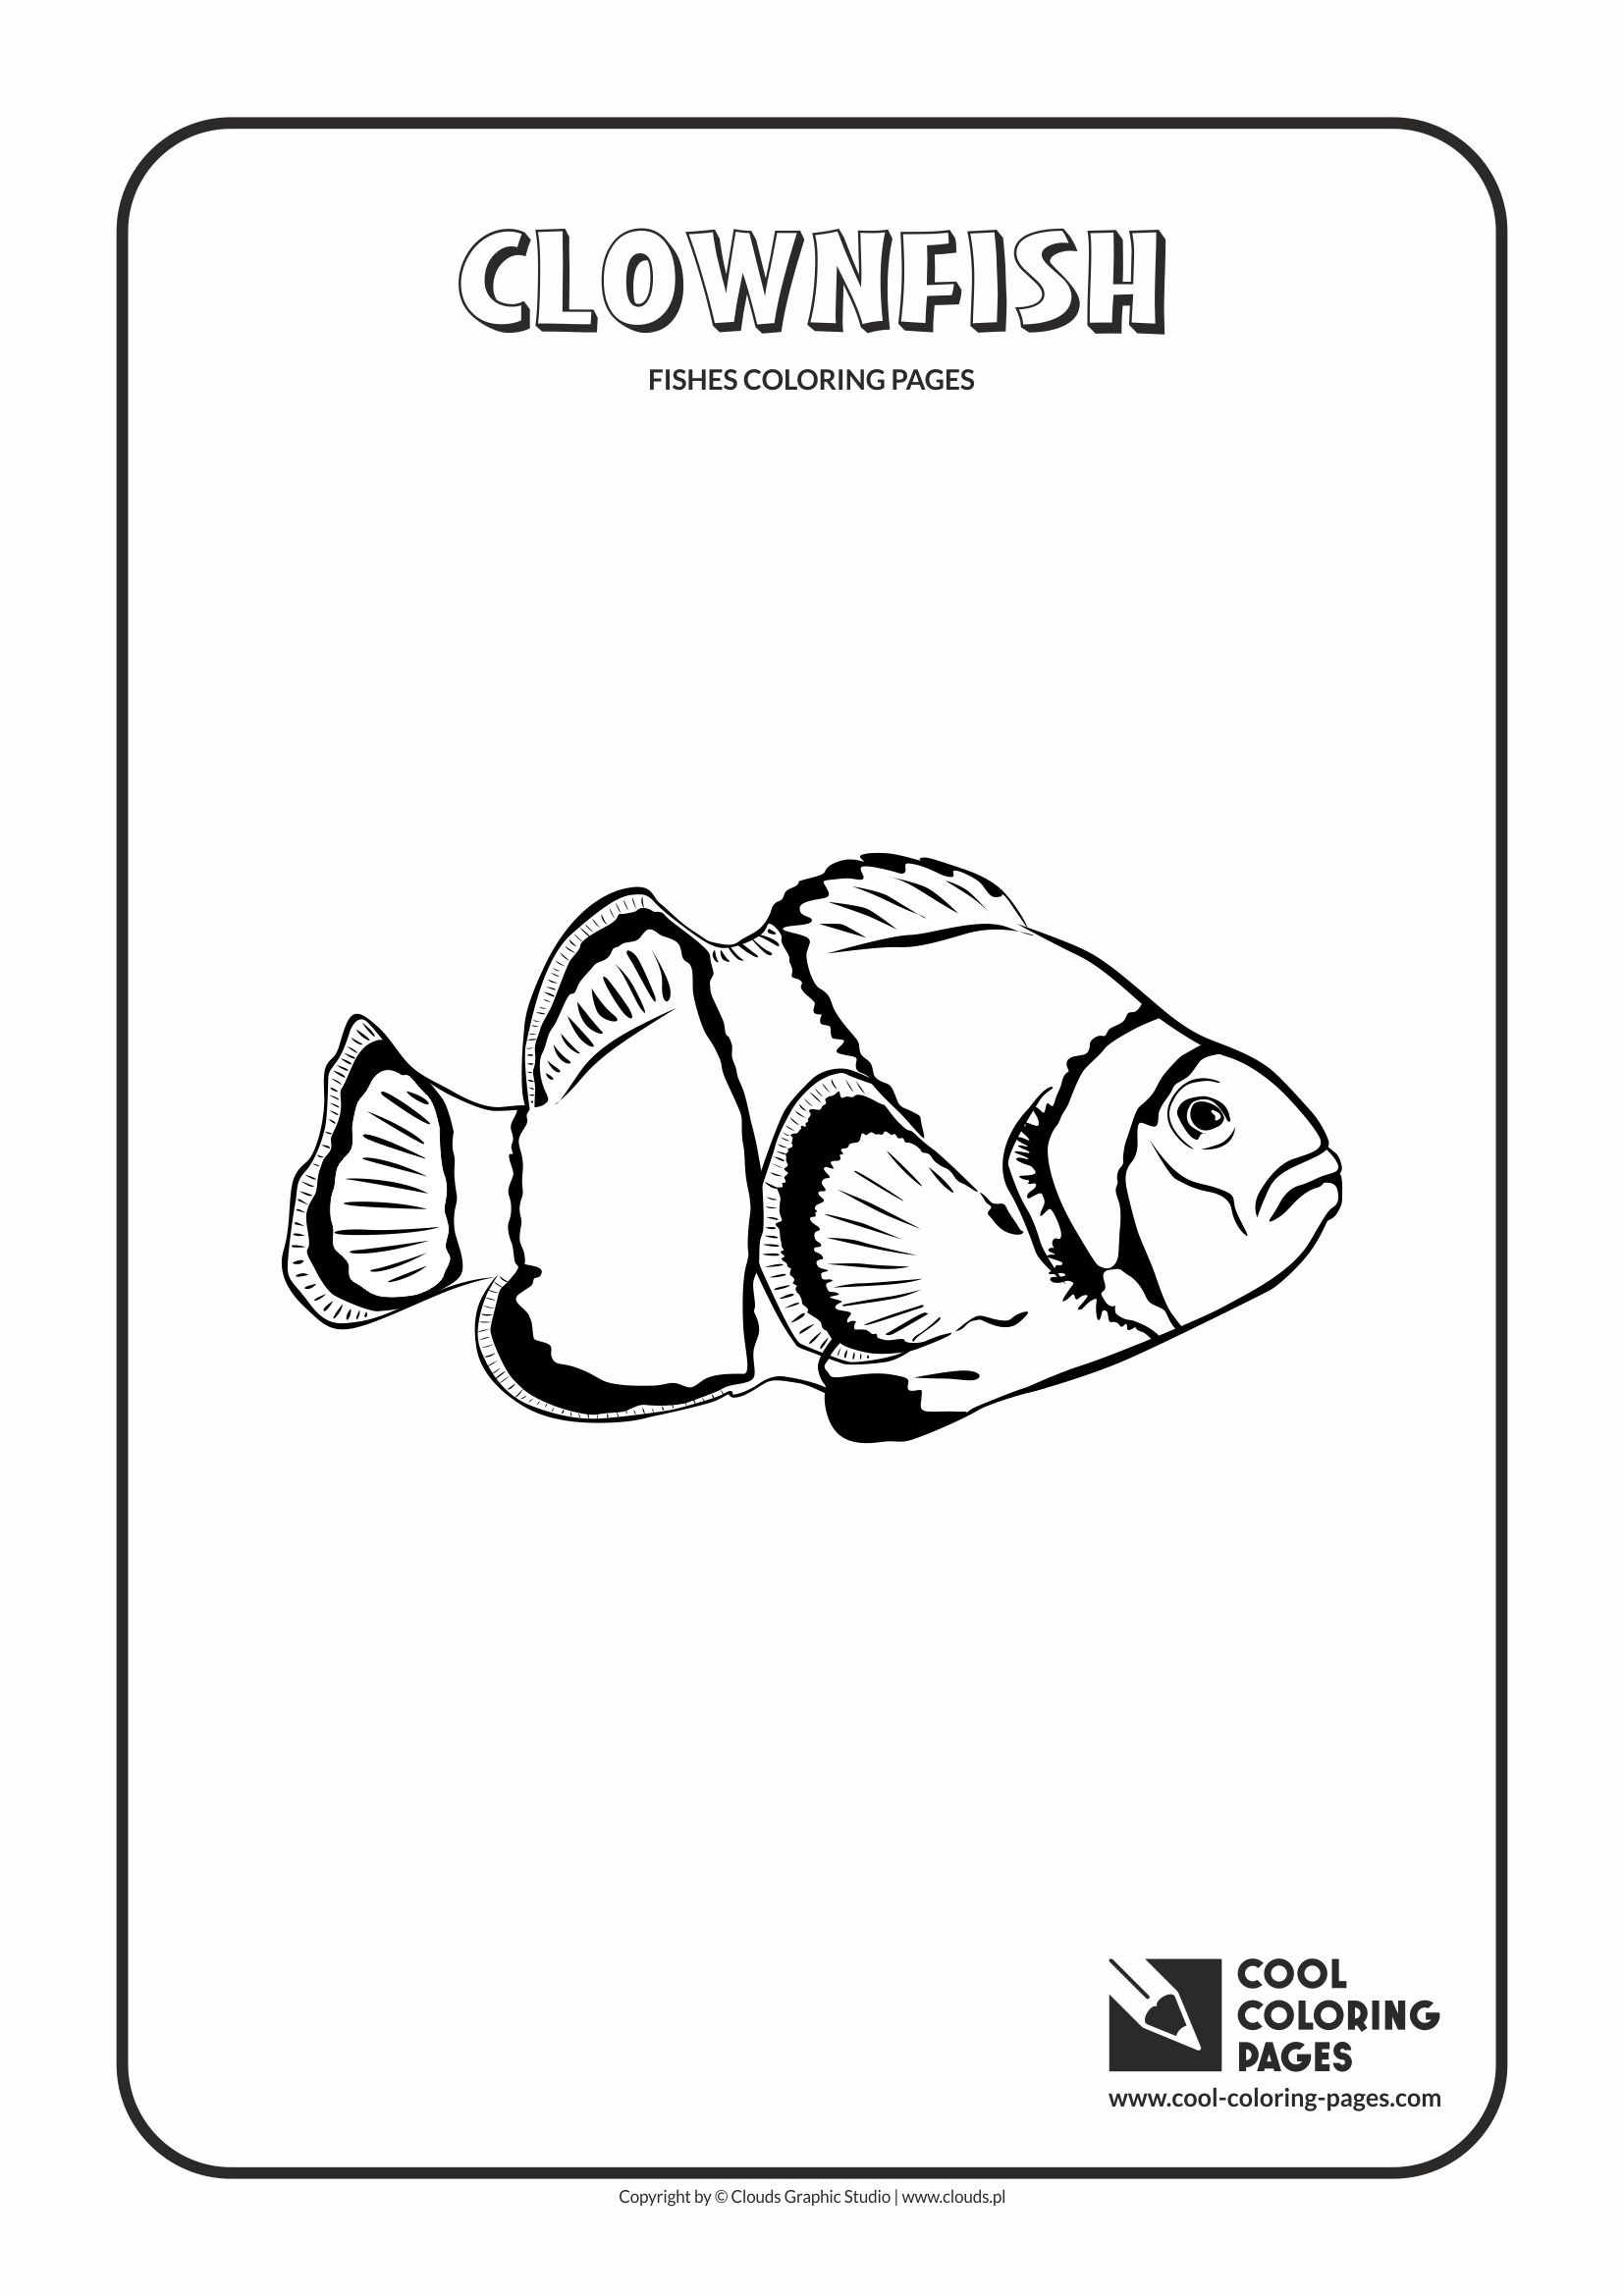 clownfish coloring page cool coloring pages